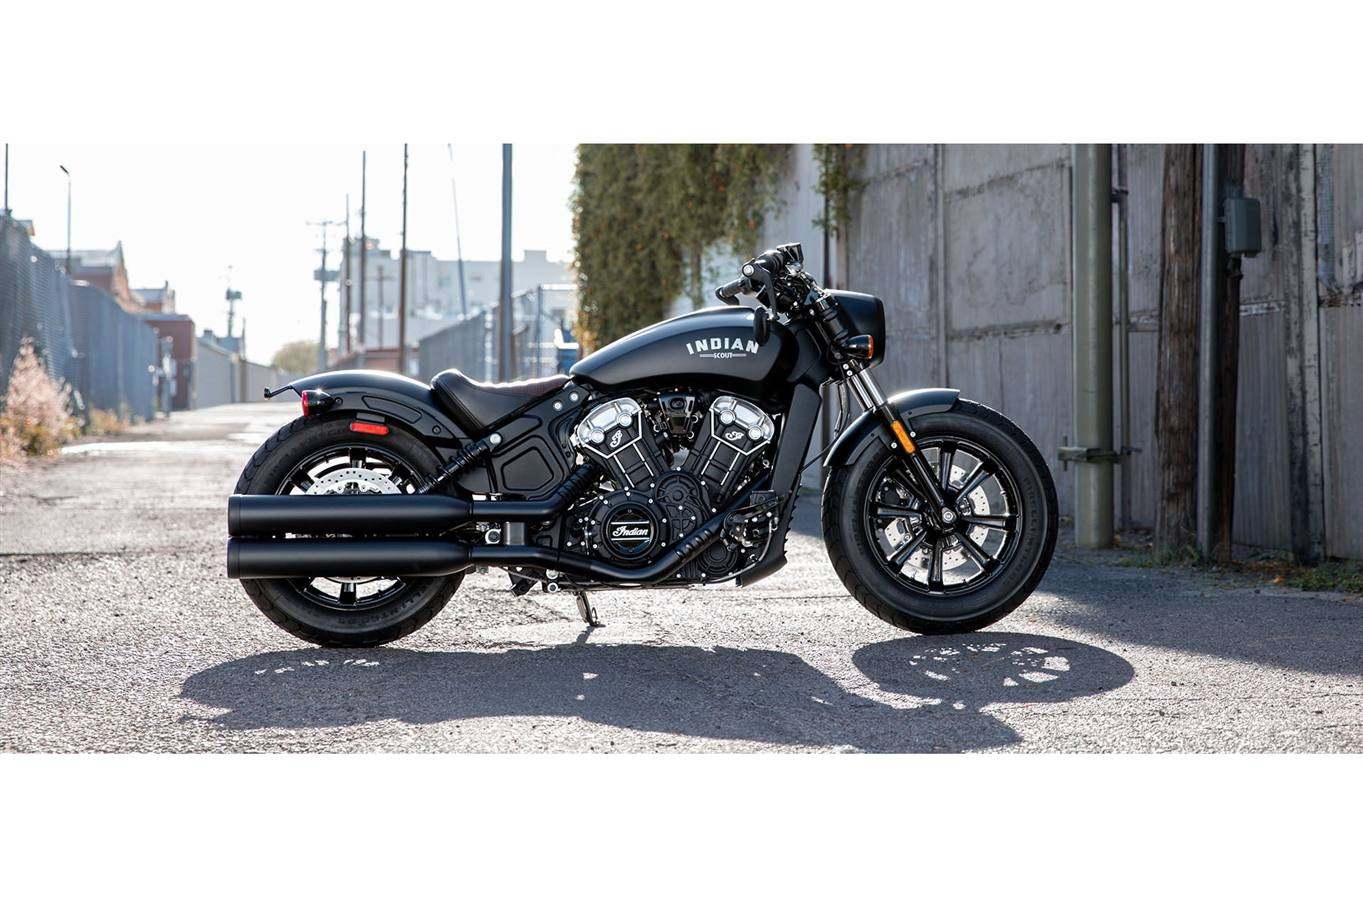 2020 Indian Motorcycle Indian Scout Bobber Abs For Sale In Scottsdale Az Go Az Motorcycles In Scottsdale Scottsdale Az 480 609 1800